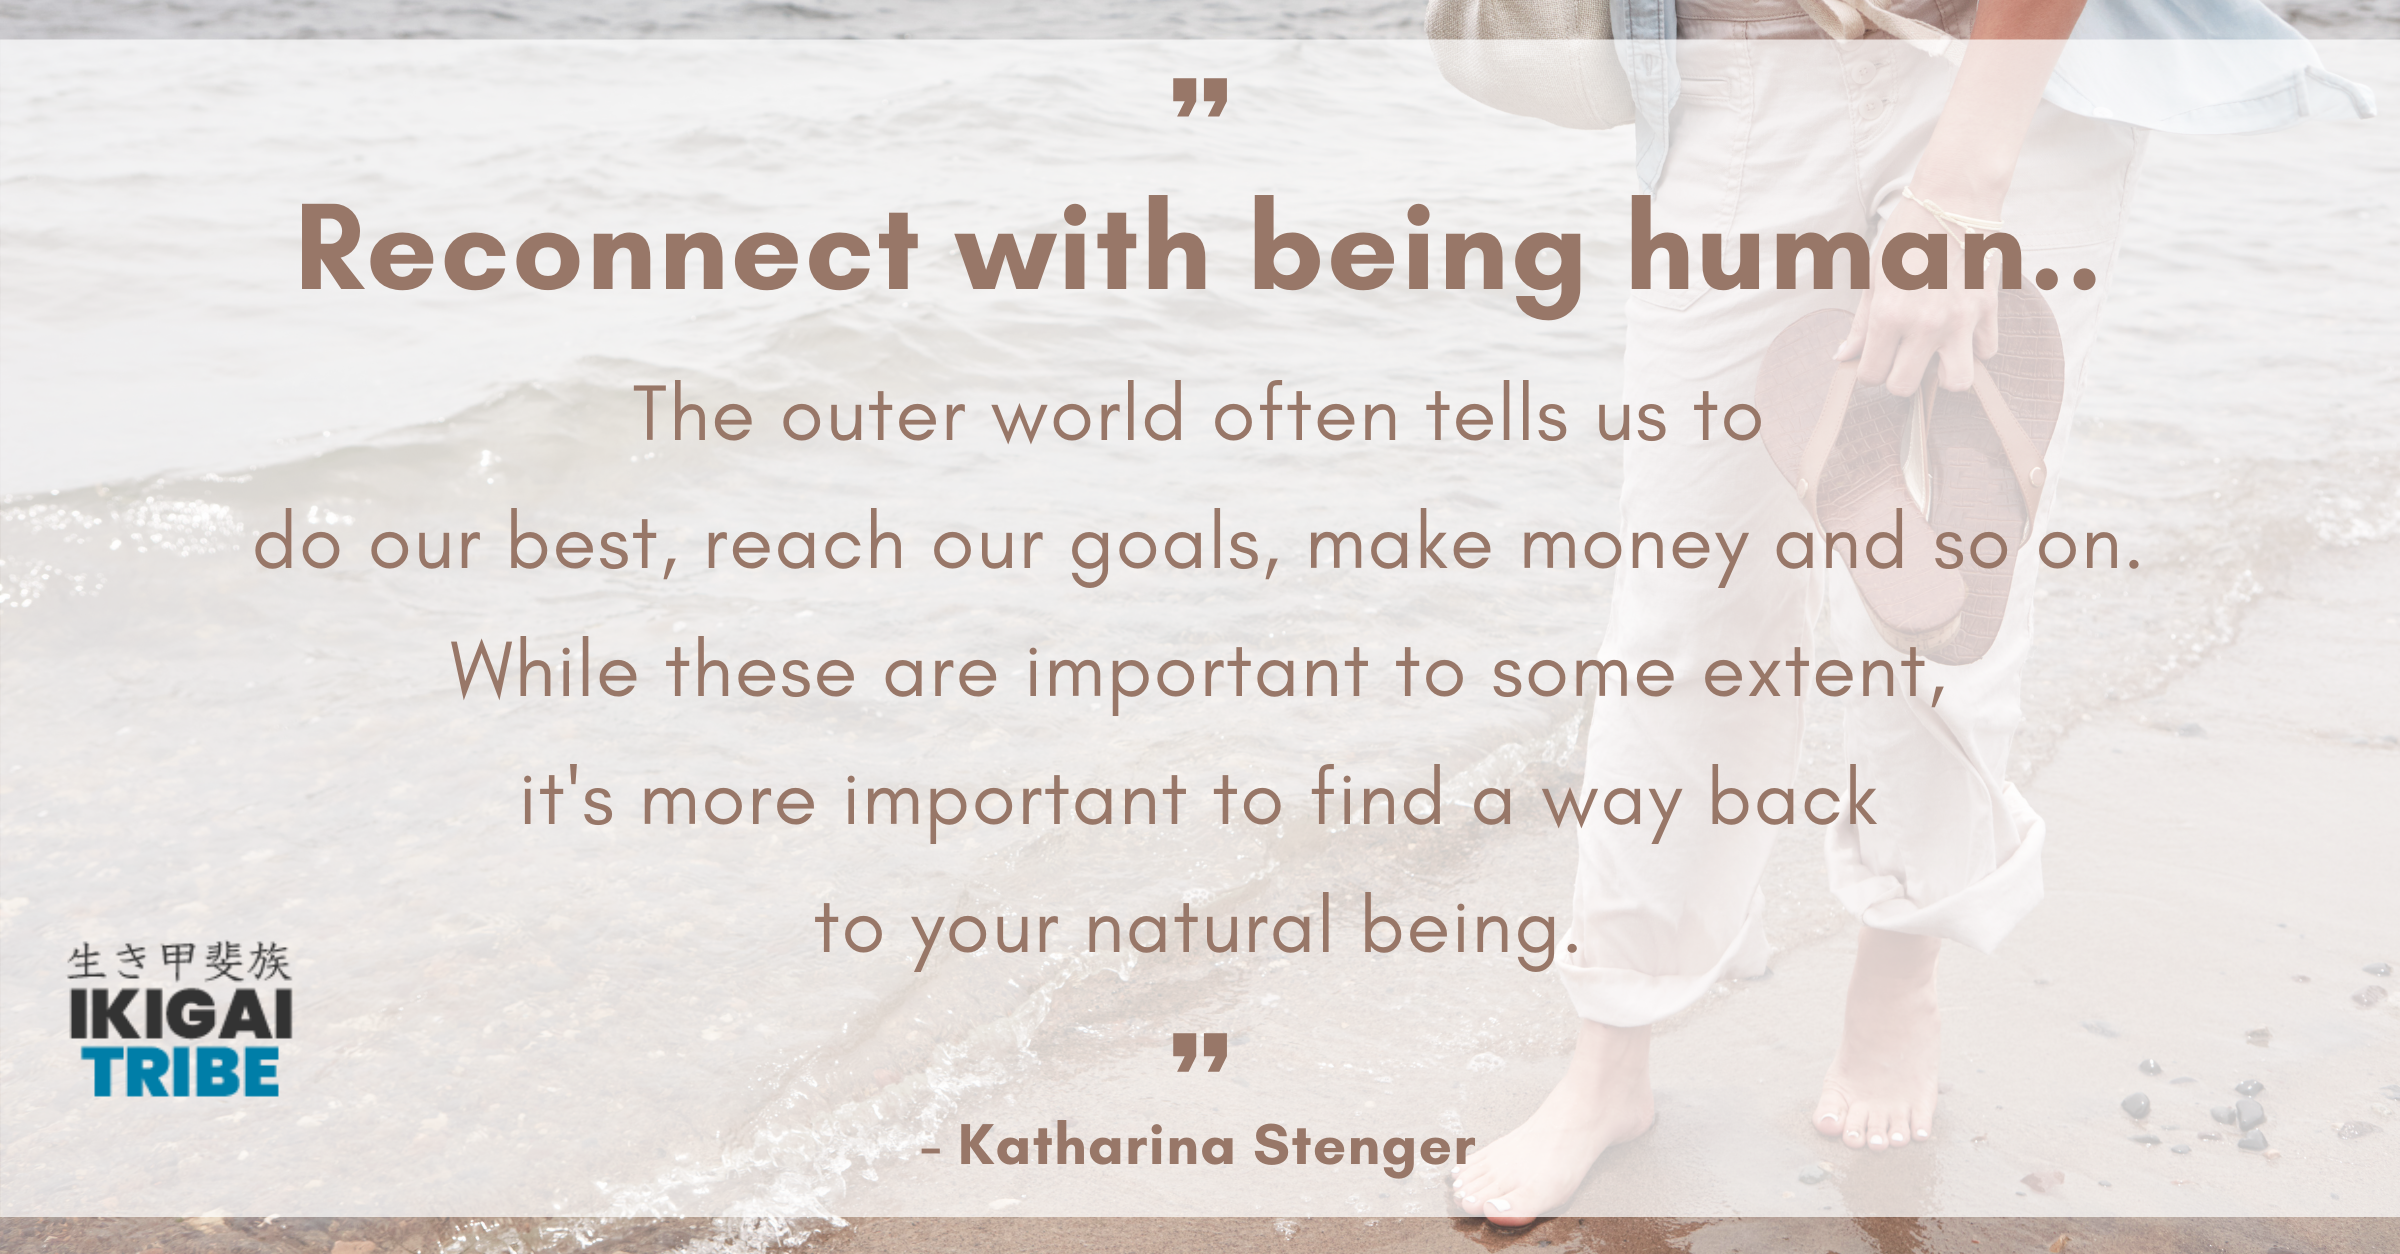 Reconnect with being human